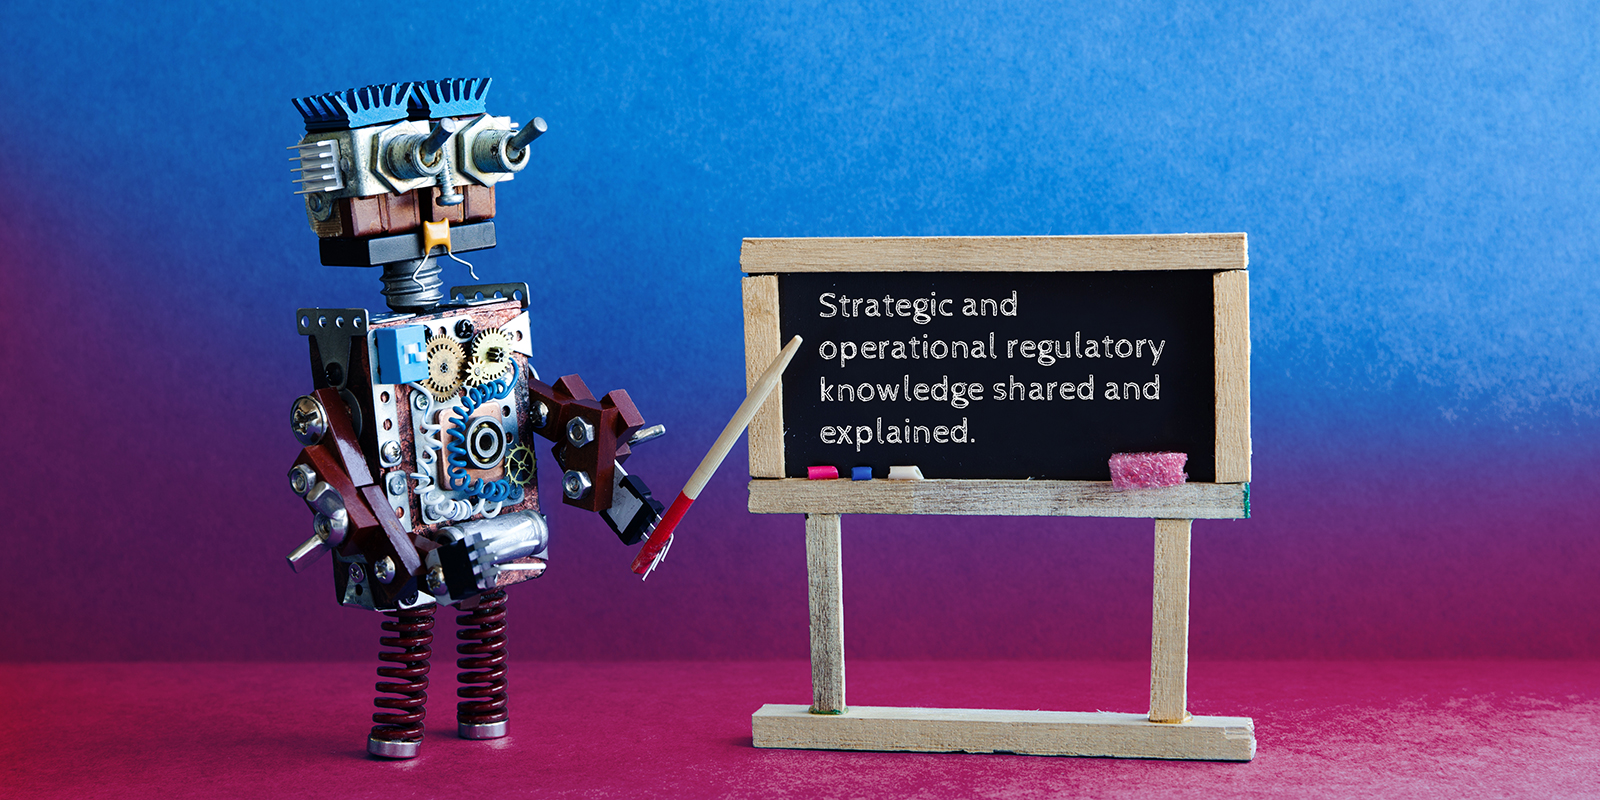 Blogging by Freij Insight: Strategic and operational regulatory knowledge shared and explained.